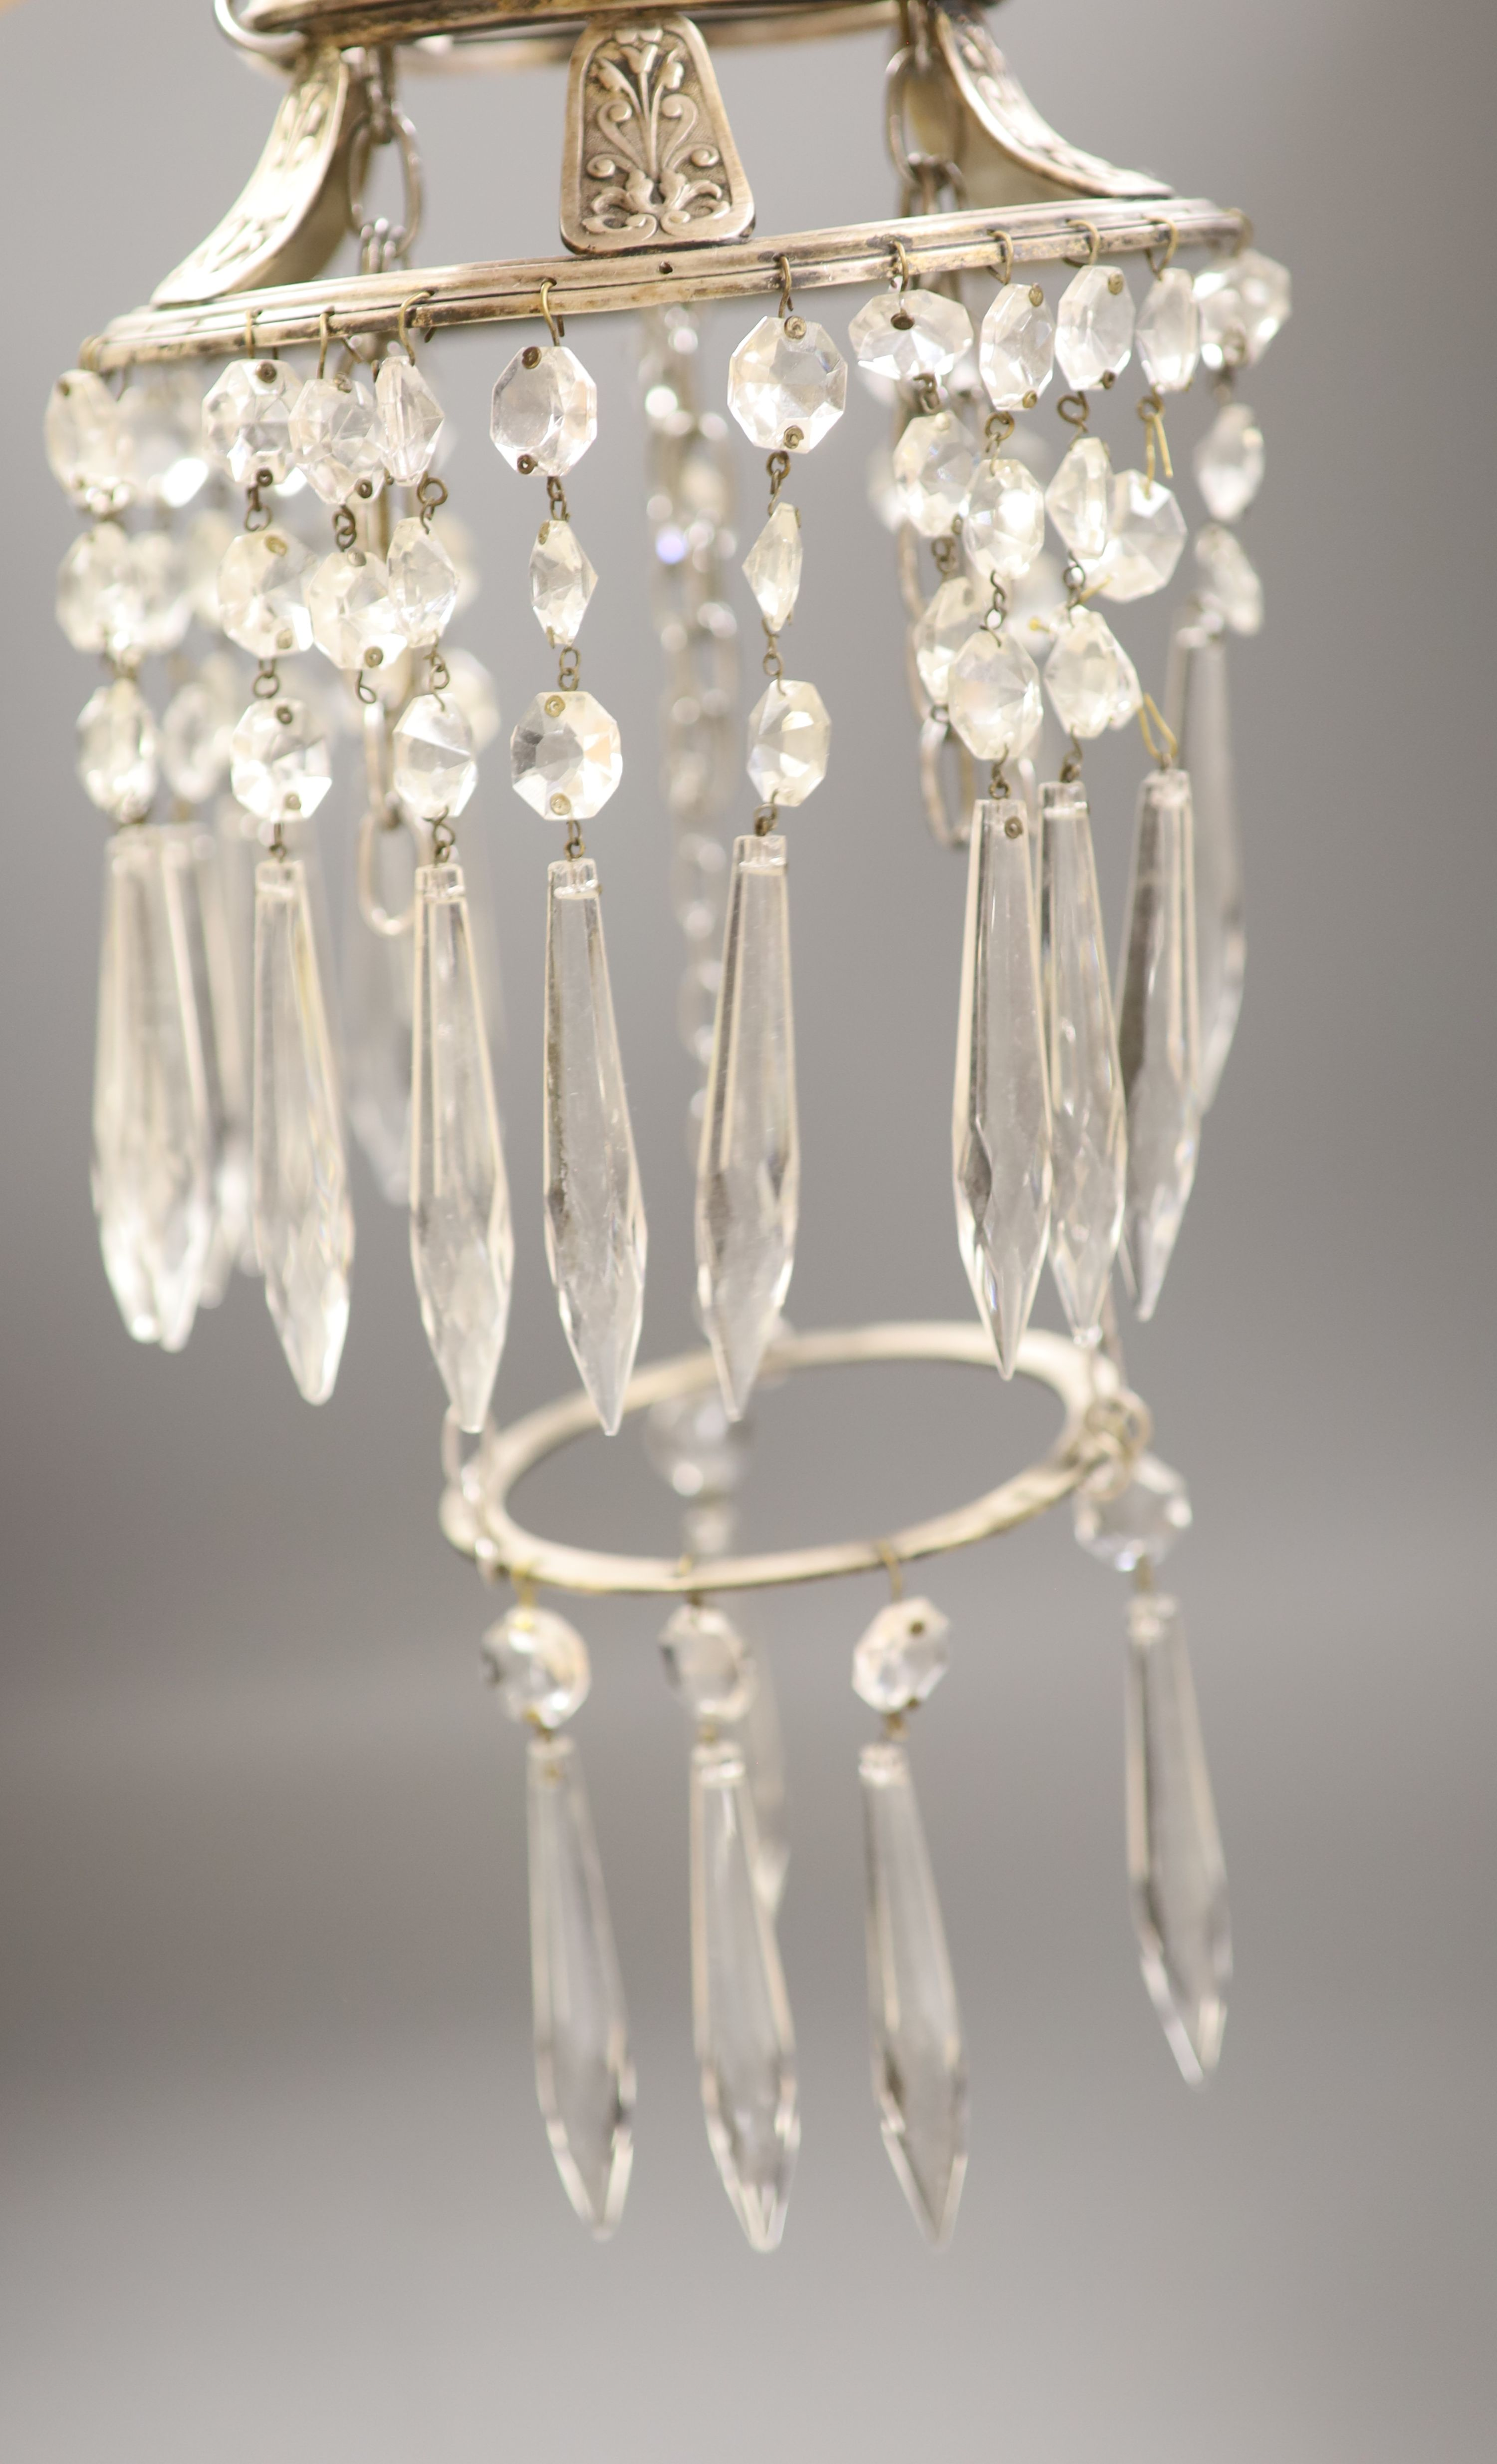 A plated ceiling light hung with clear glass drops